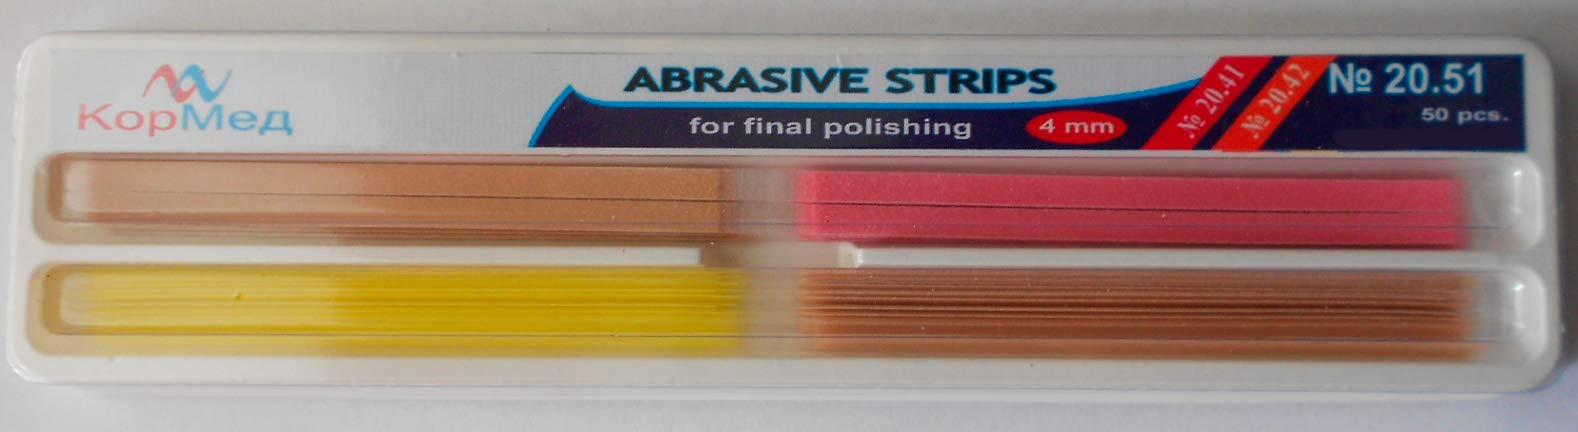 Dental Abrasive Strips for Contouring (gross reduction/contouring/finishing) 50 pcs (Cormed) (4 mm wide)